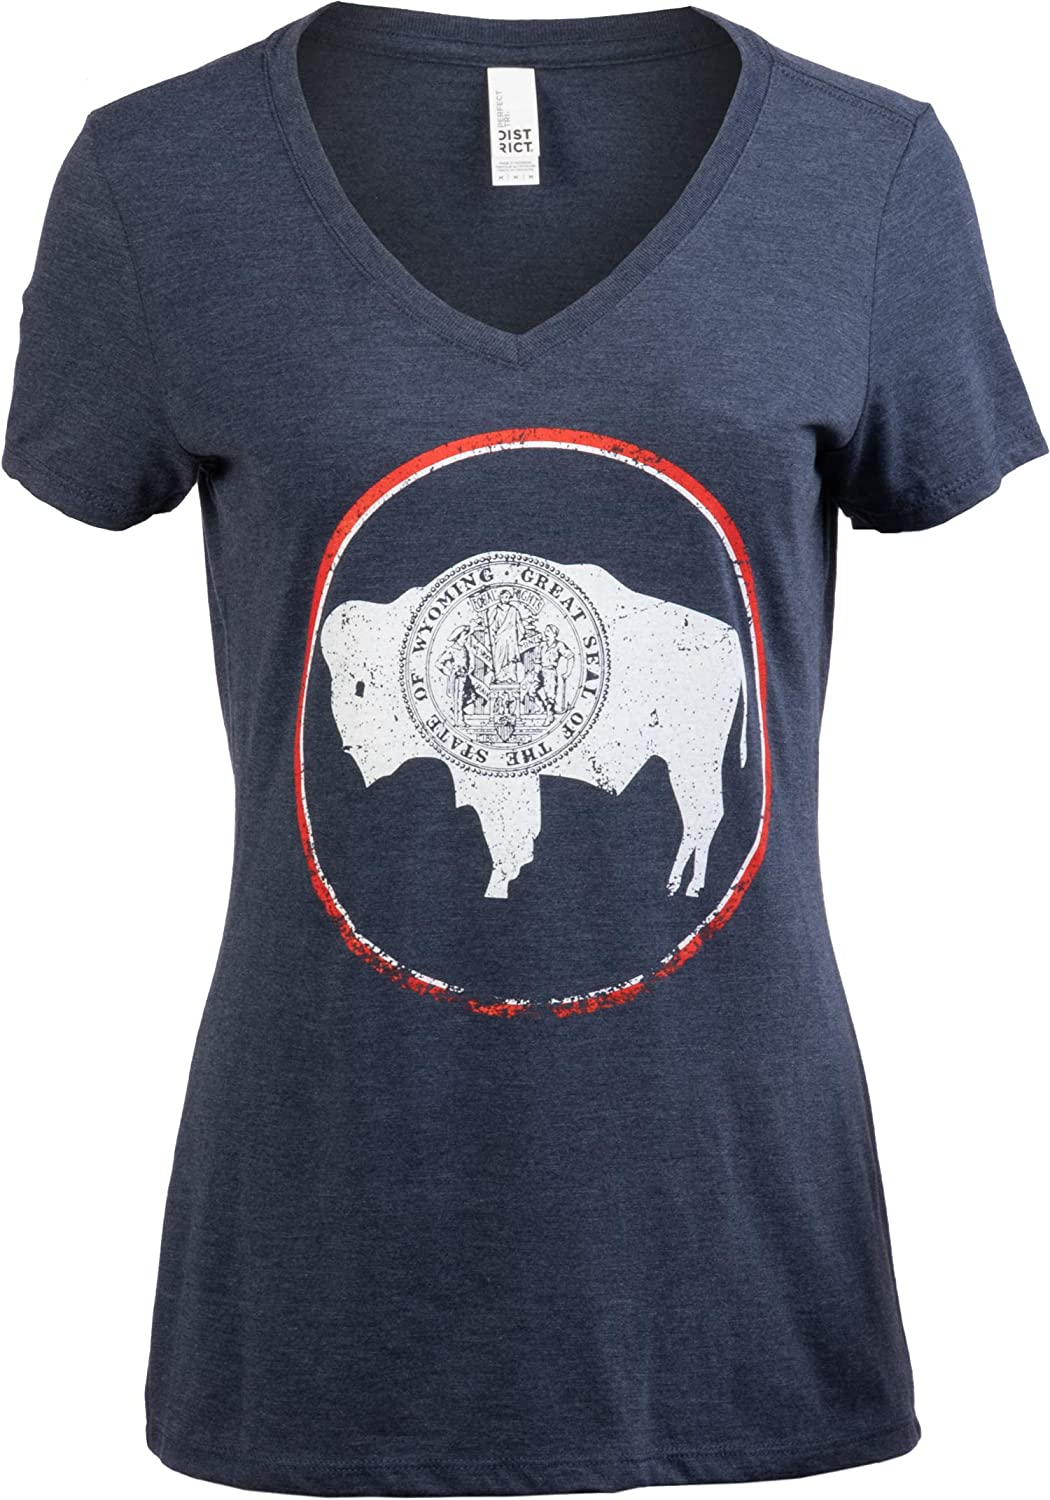 Vintage Wyoming Flag | Crest and Buffalo WY State Pride Women's V-Neck T-Shirt Top